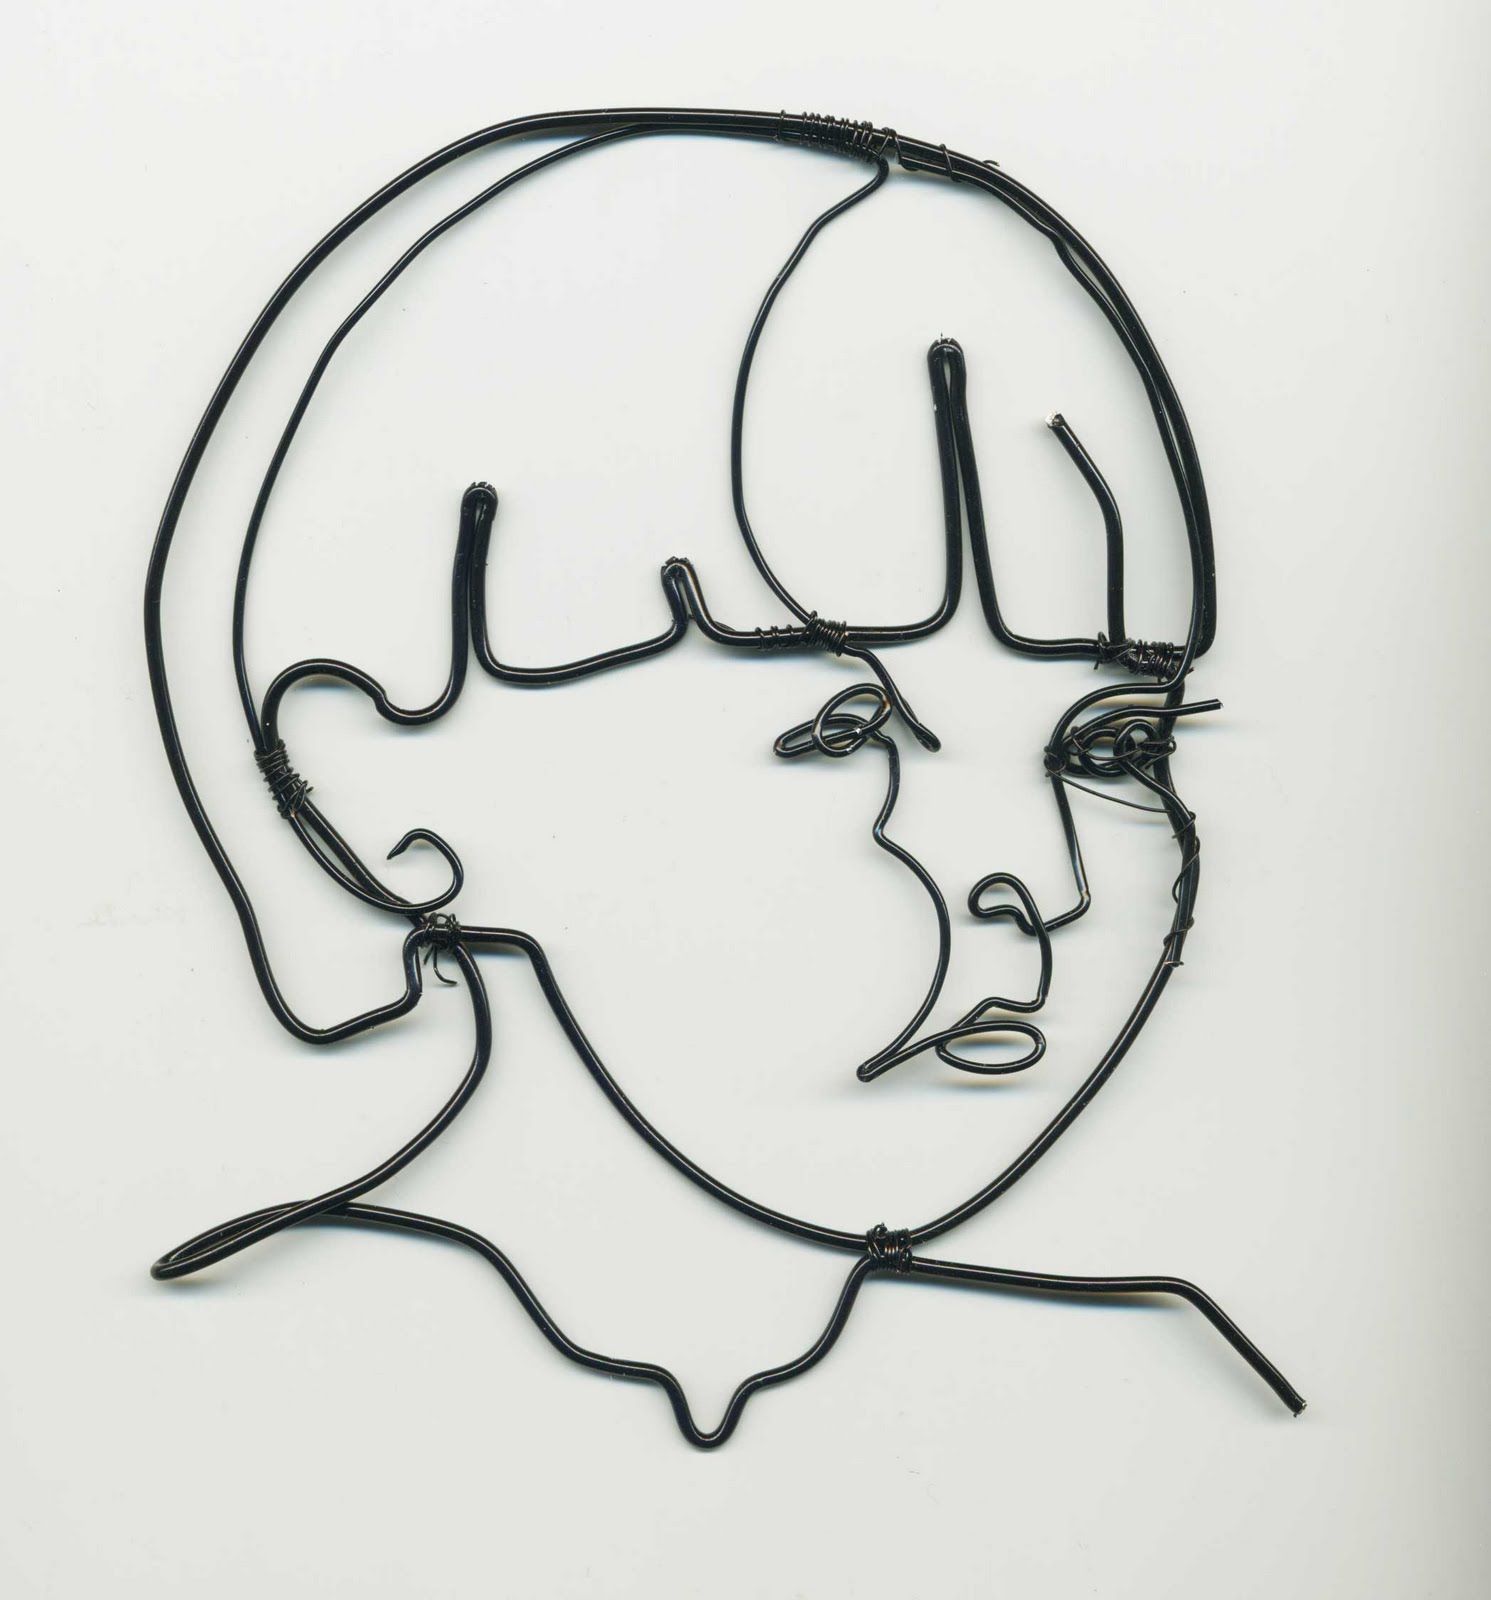 Blind Contour Line Drawing Lesson Plan : I am going to get my students do a blind contour